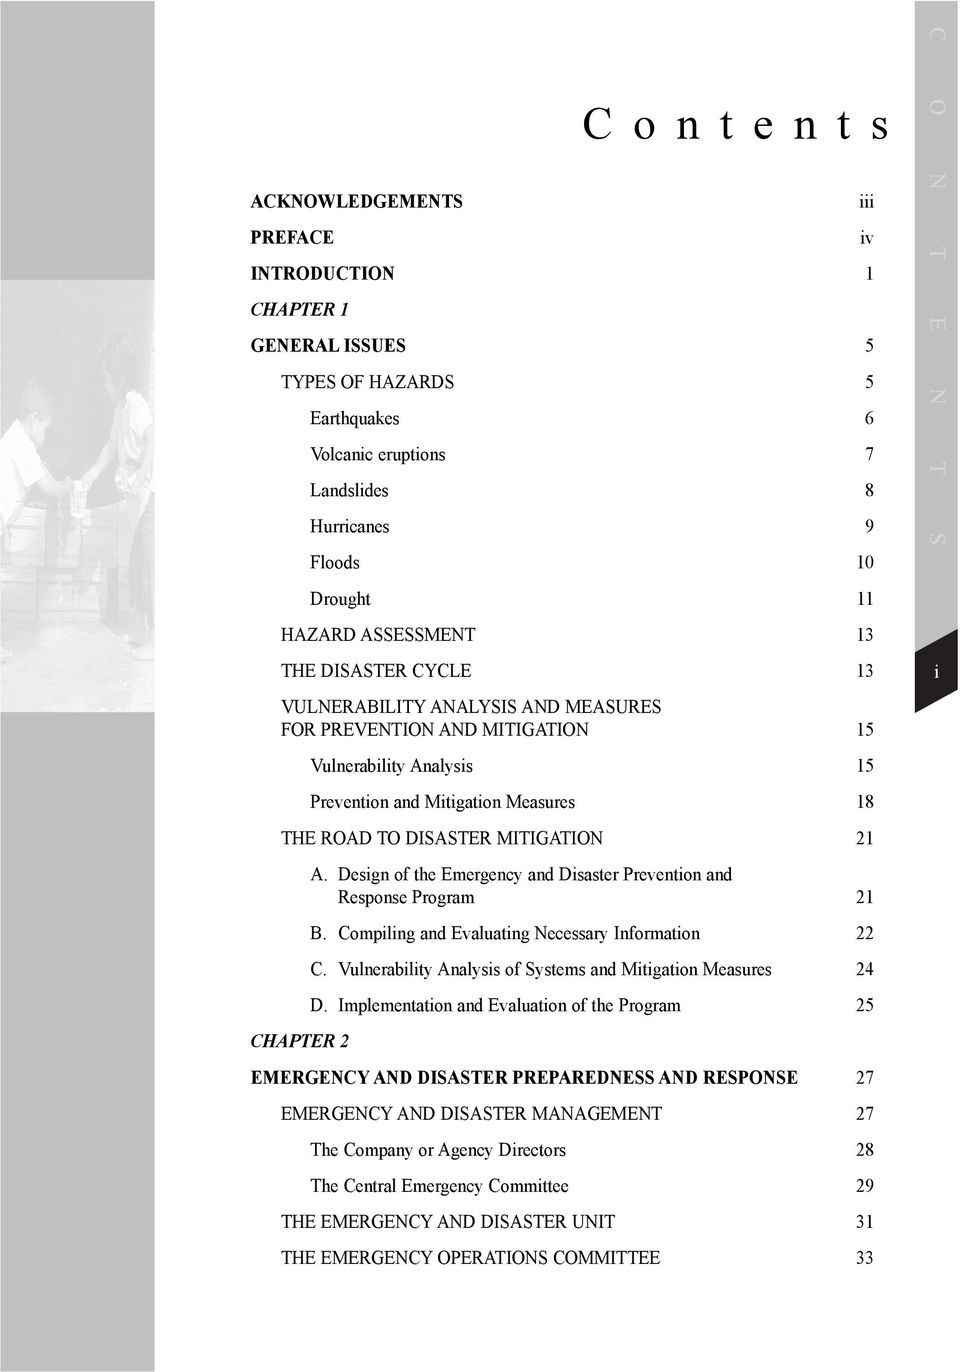 Contents A. Design of the Emergency and Disaster Prevention and Response Program 21 B. Compiling and Evaluating Necessary Information 22 C.